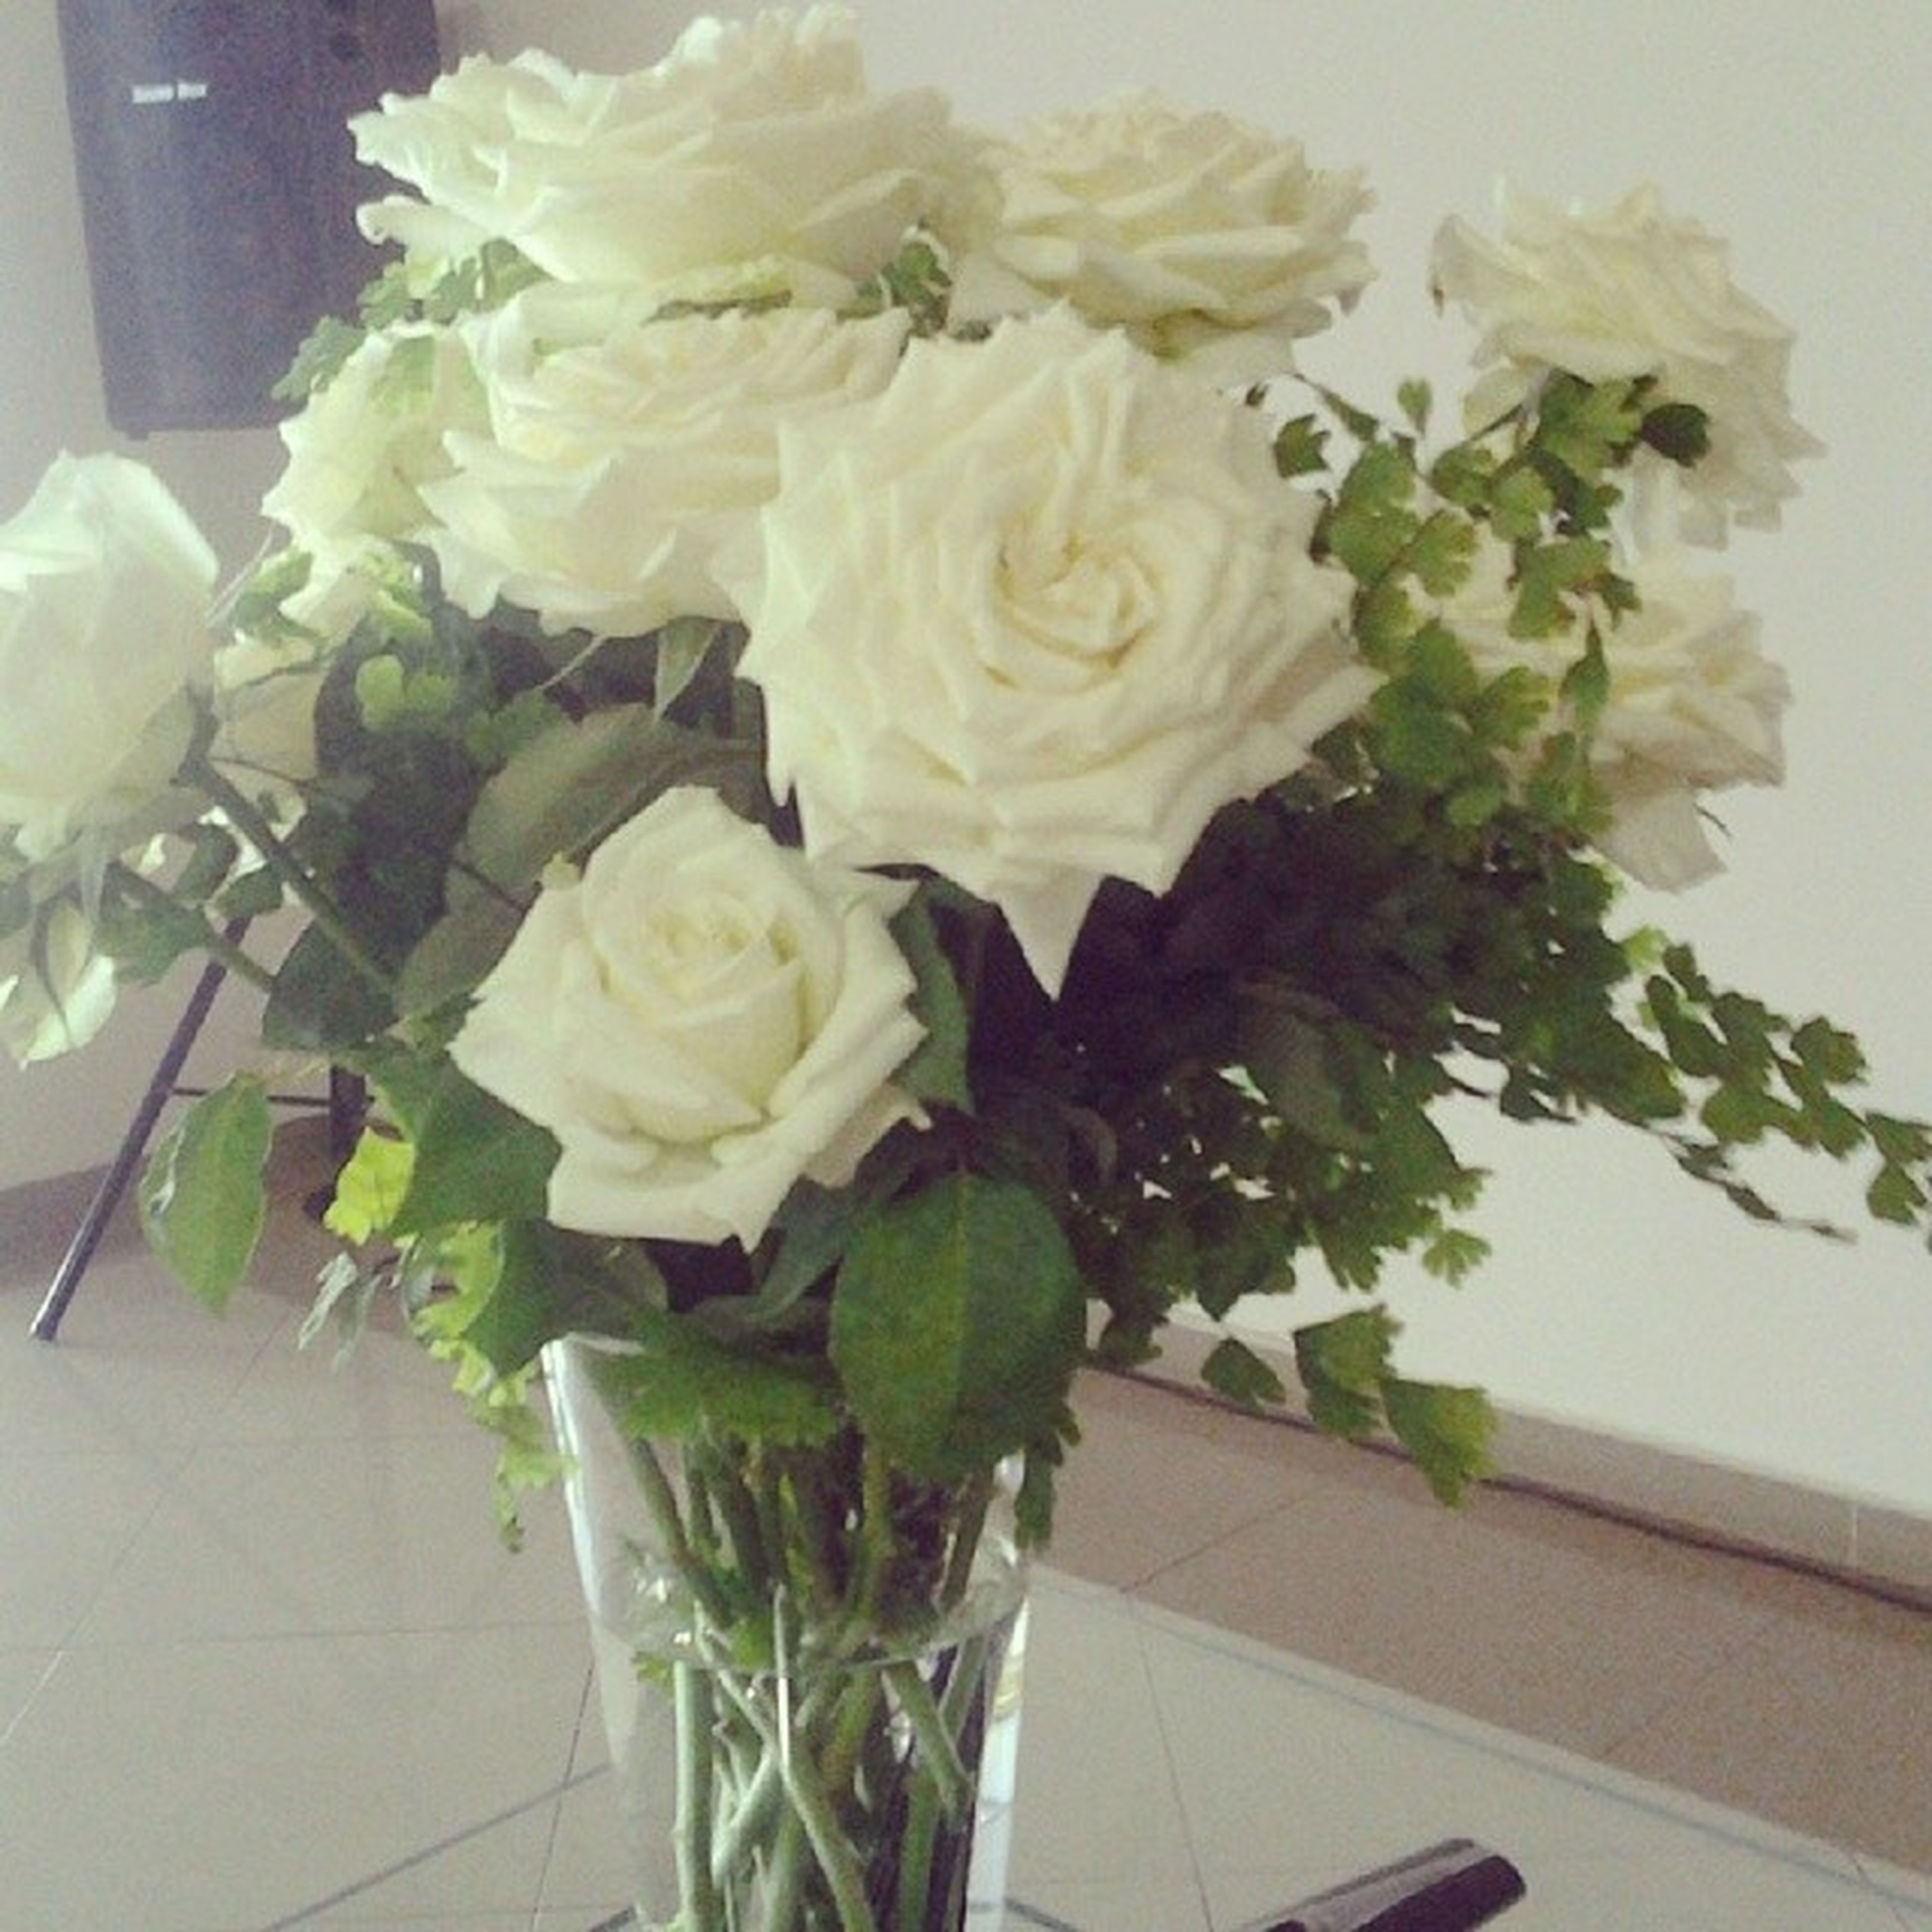 flower, indoors, freshness, vase, bouquet, rose - flower, fragility, petal, table, flower head, flower arrangement, bunch of flowers, high angle view, decoration, still life, close-up, beauty in nature, white color, no people, potted plant